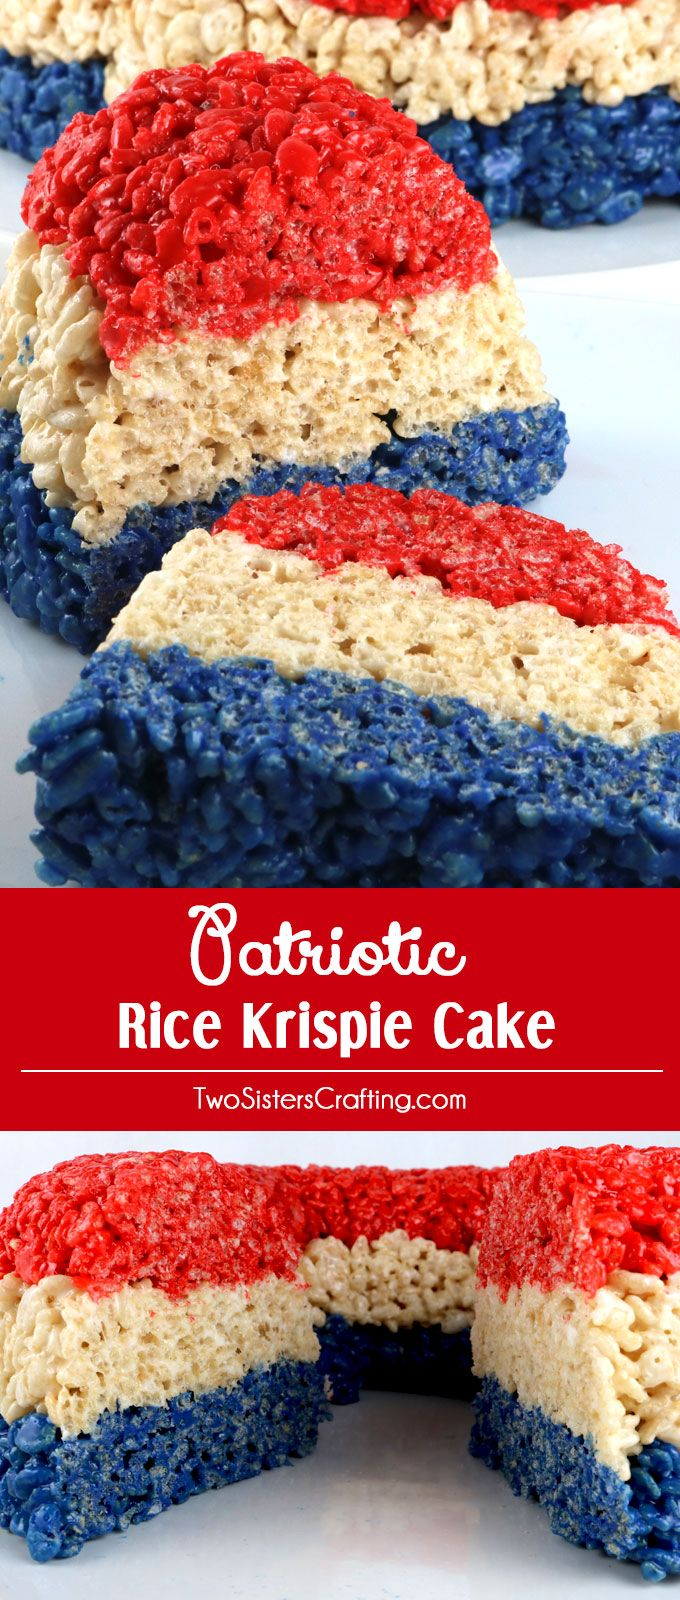 Patriotic Rice Krispie Cake - gorgeous, delicious and unique! This lovely Red White and Blue treat will be a hit with your family and your party guests because who doesn't love Rice Krispie Treats? It would be a great dessert for a 4th of July Party, a Memorial Day BBQ or even an Olympics viewing party. Pin this delicious 4th of July treat for later and follow us for more great 4th of July Food Ideas.